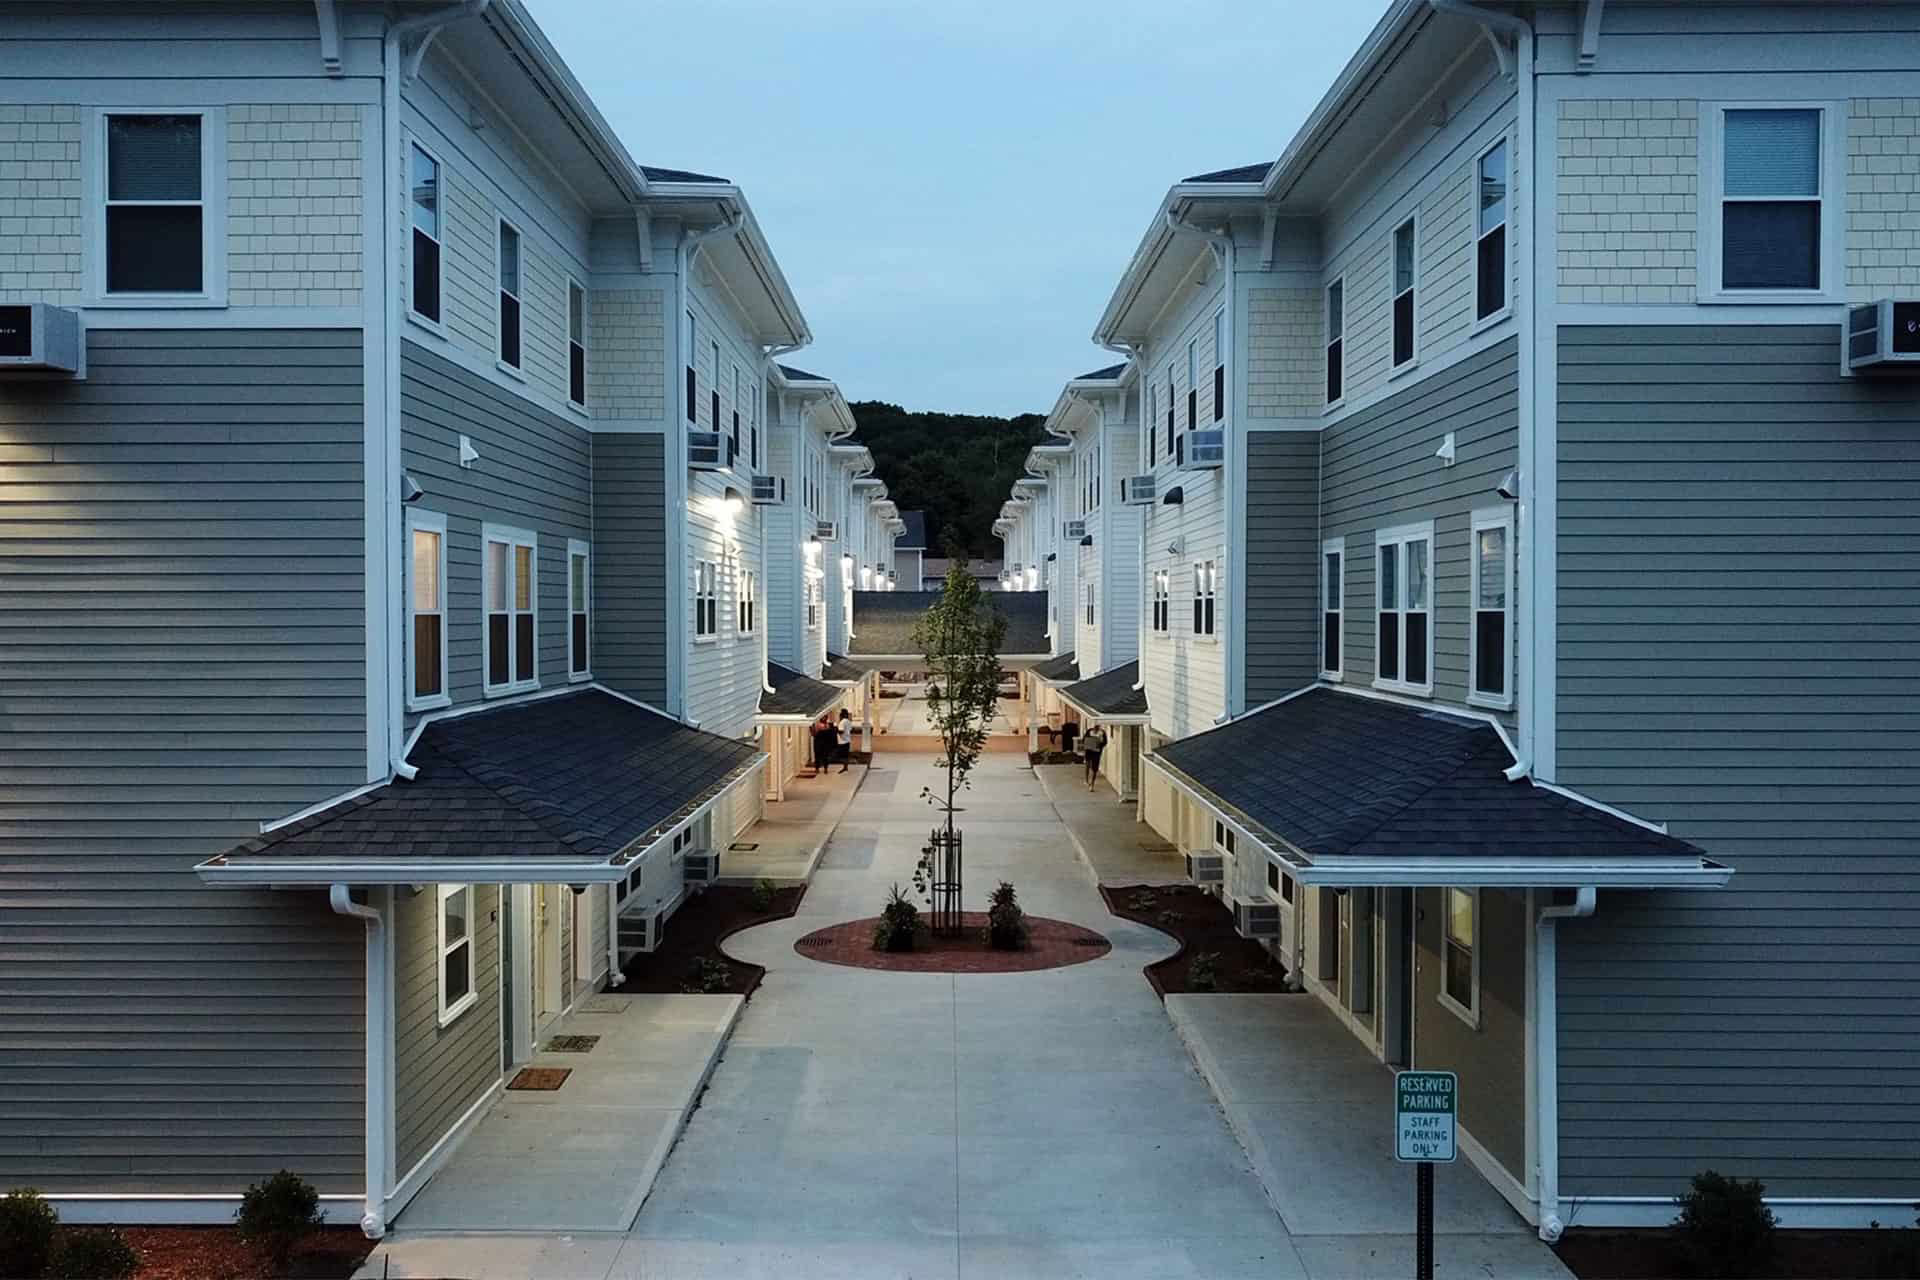 Courtyard at dusk in the Maplewoods development